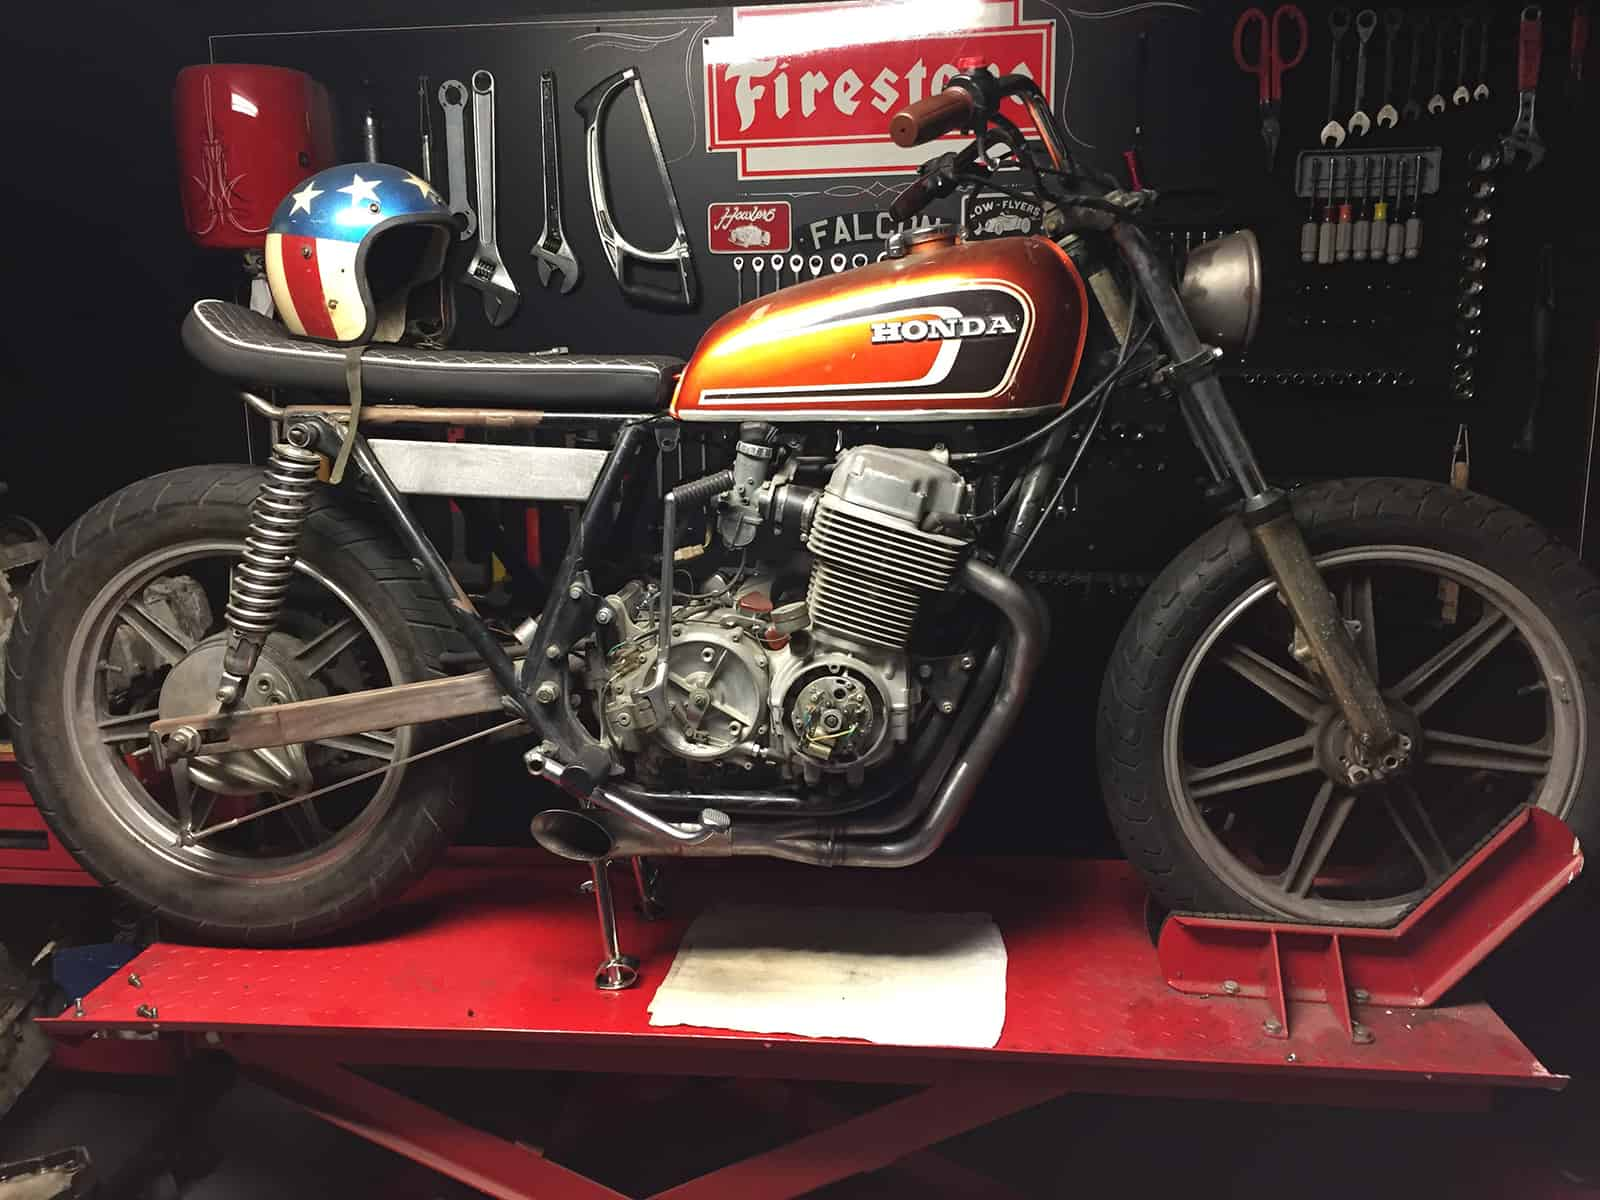 Exhaust System Aptly Named The Hot Rod Cb750 Sohc 4 Into 1 Exhaust For 69 78 Honda 750 Carpy S Cafe Racers